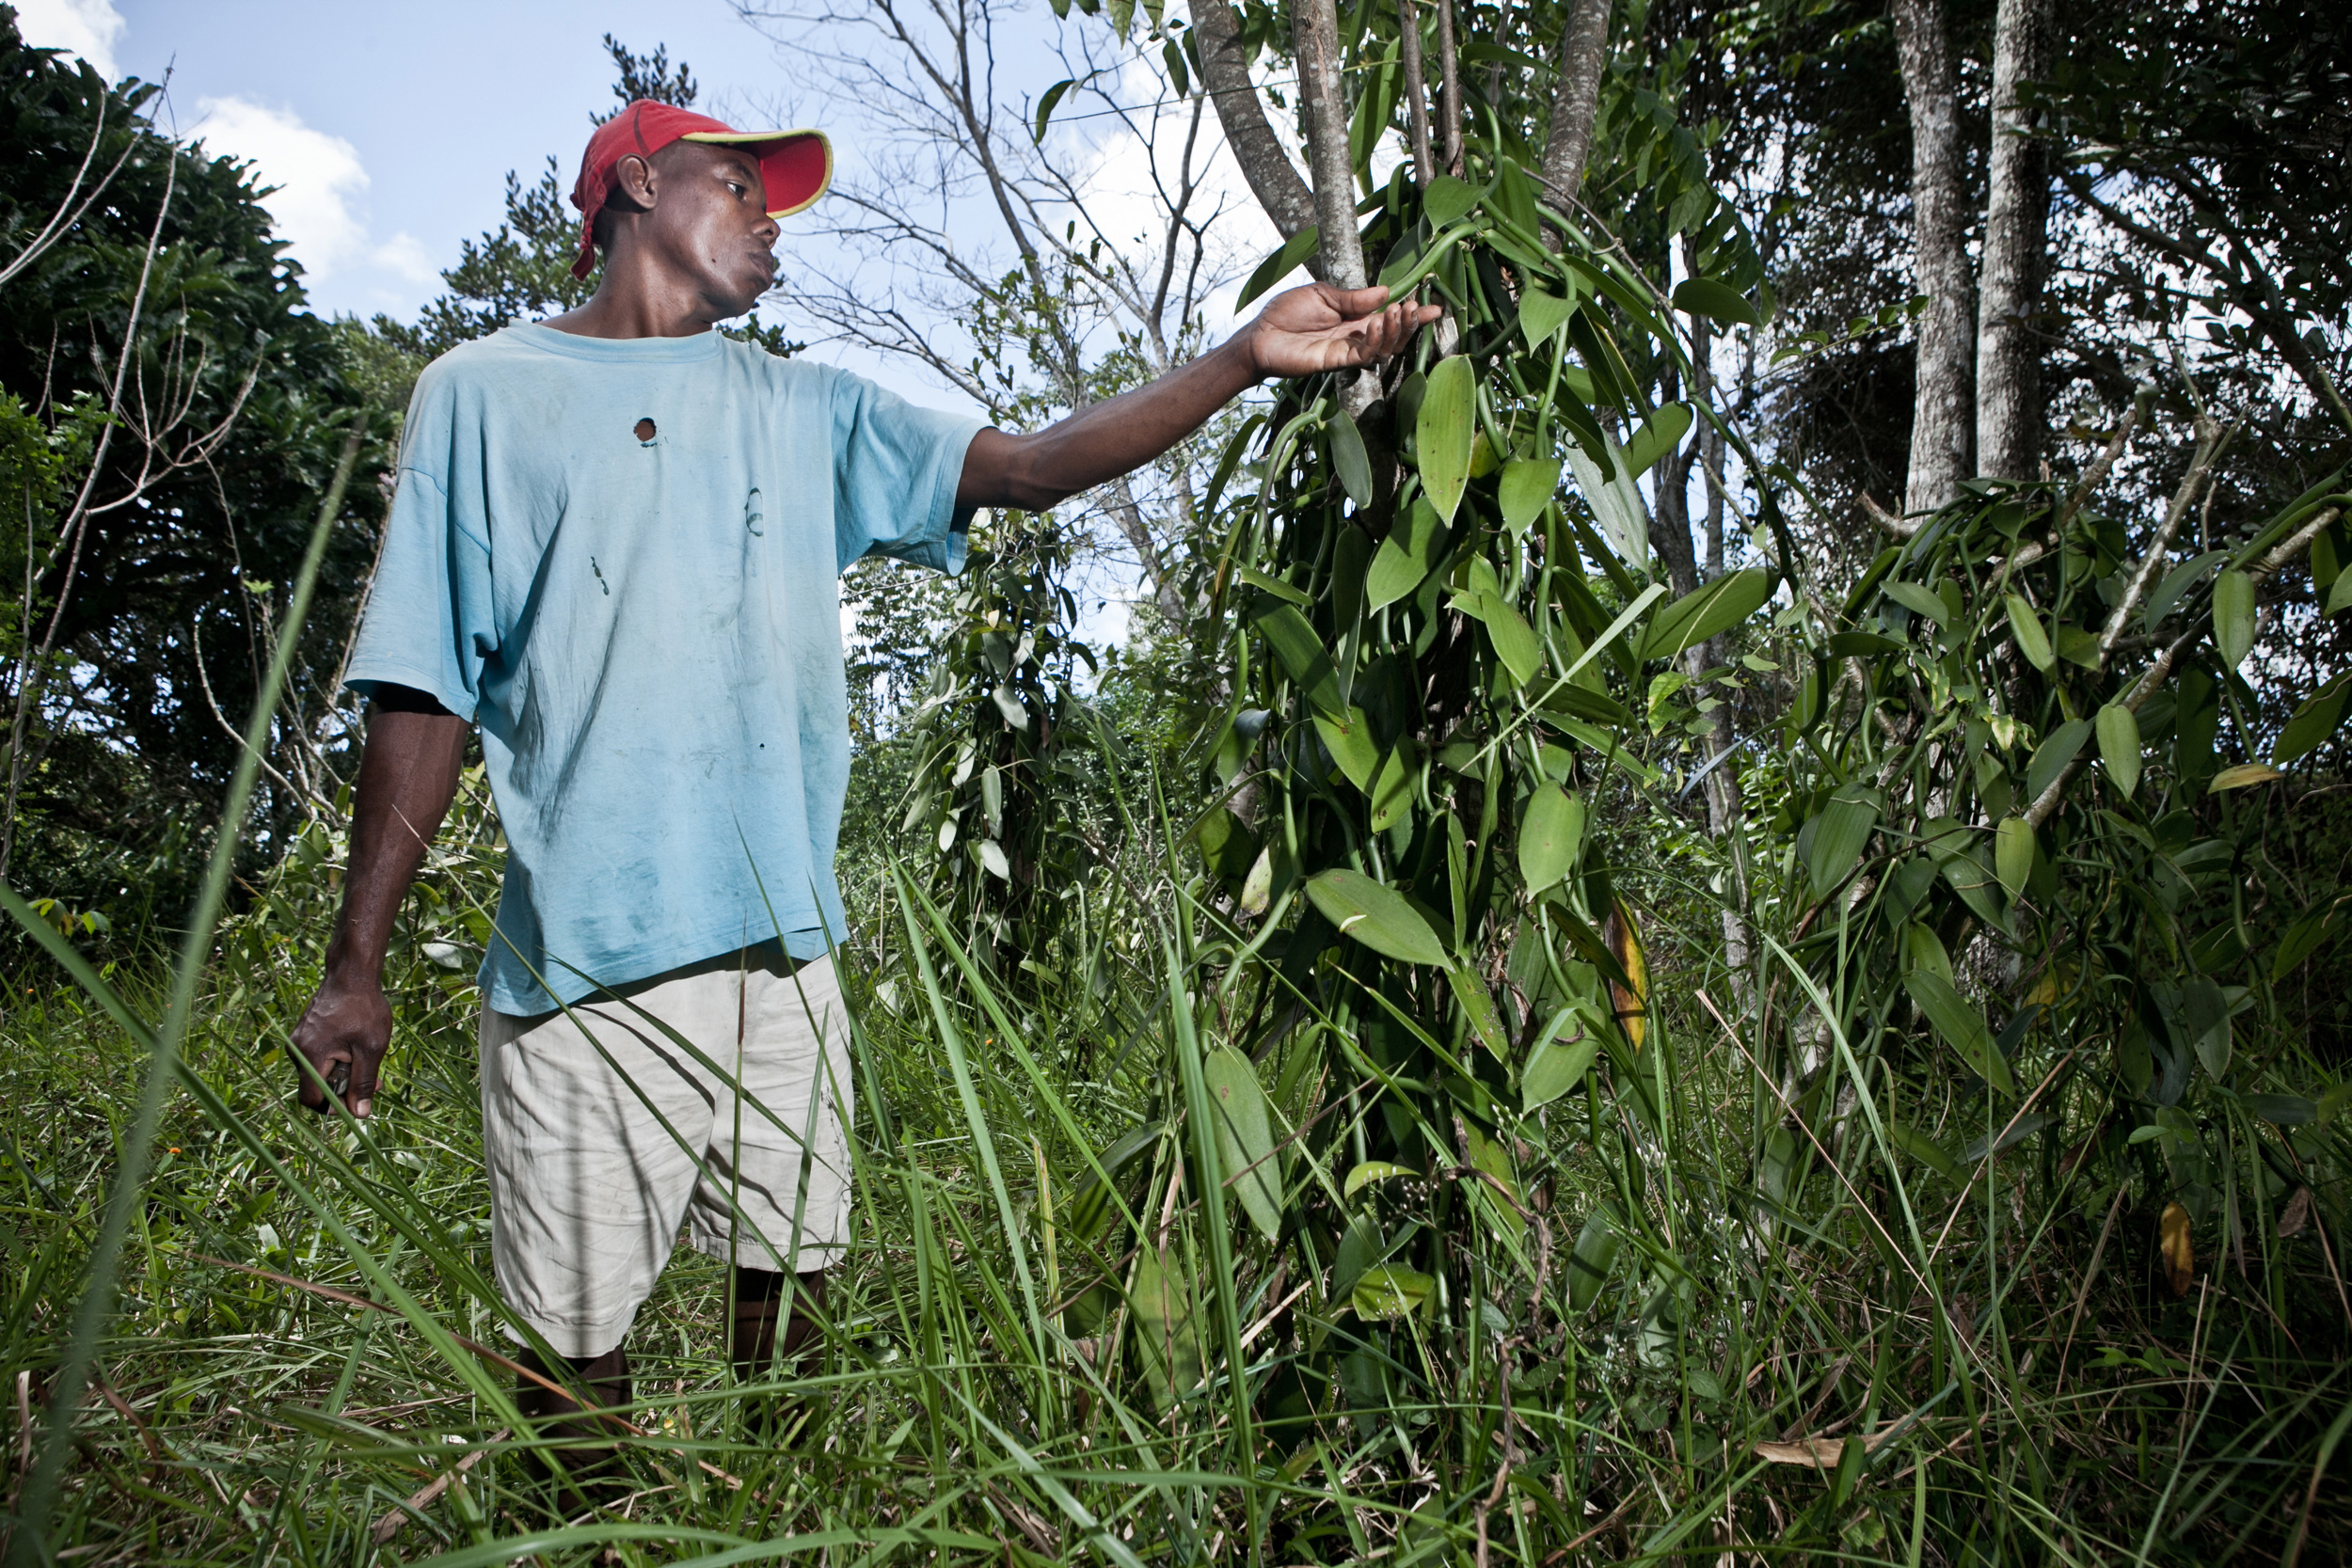 A worker checks a patch in a vanilla plantation near Sambava. Vanilla needs shade and humidity to grow.